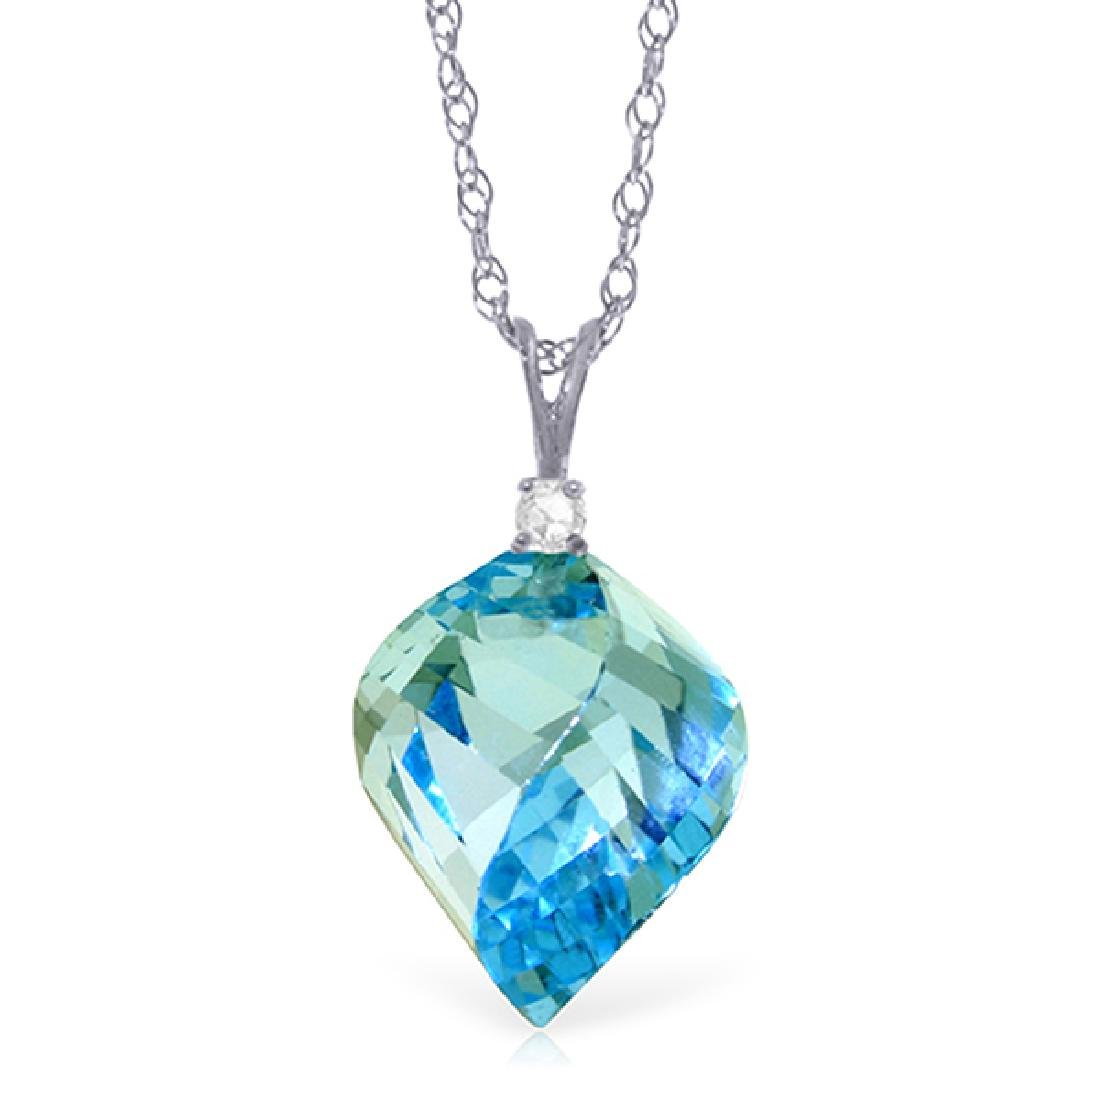 Genuine 13.95 ctw Blue Topaz & Diamond Necklace Jewelry